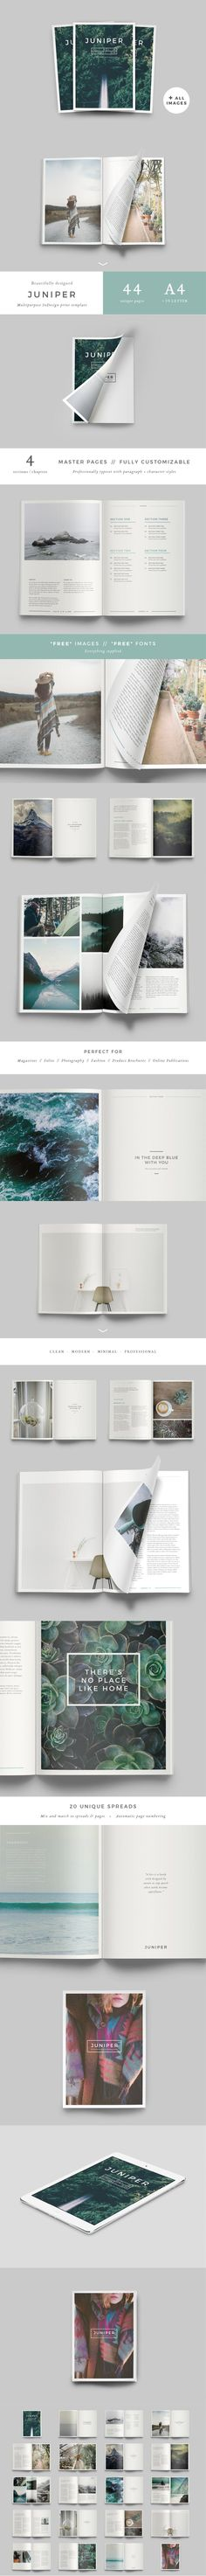 LOOKBOOK TEMPLATE BROCHURE FOLIO MODERN MAGAZINE HIPSTER BOHO - fashion design brochure template